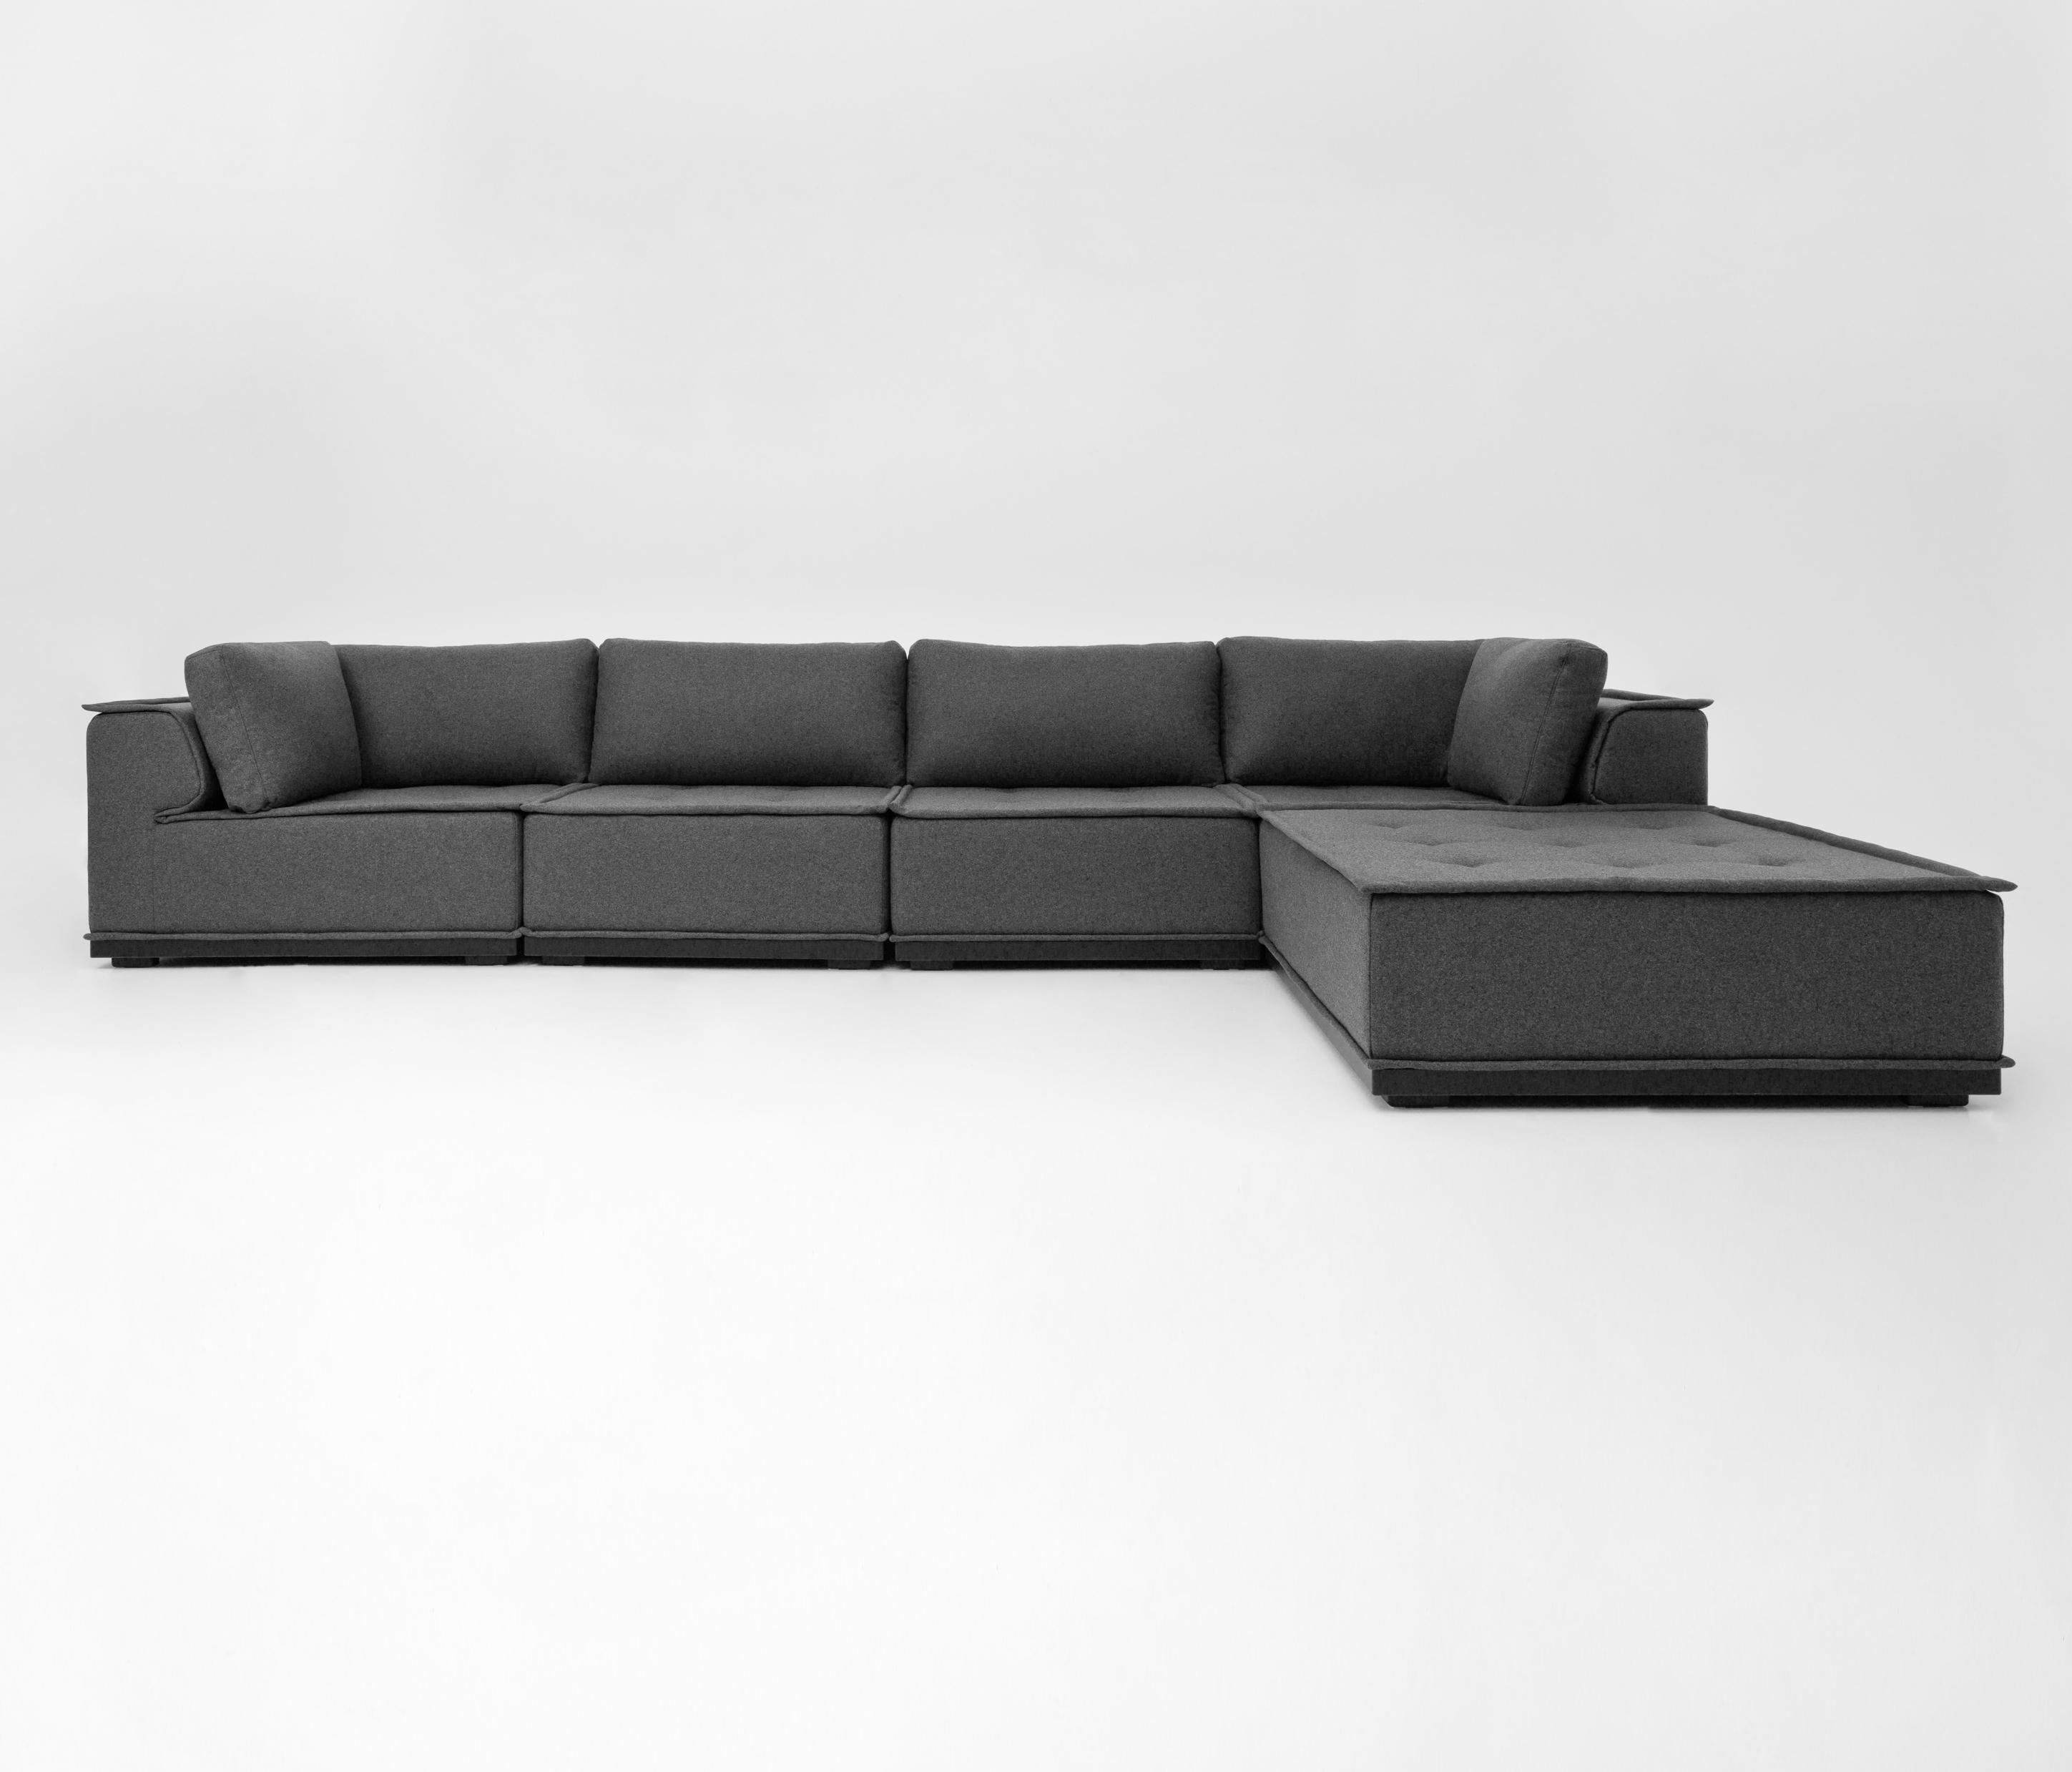 napo sofa sofas von comforty architonic. Black Bedroom Furniture Sets. Home Design Ideas